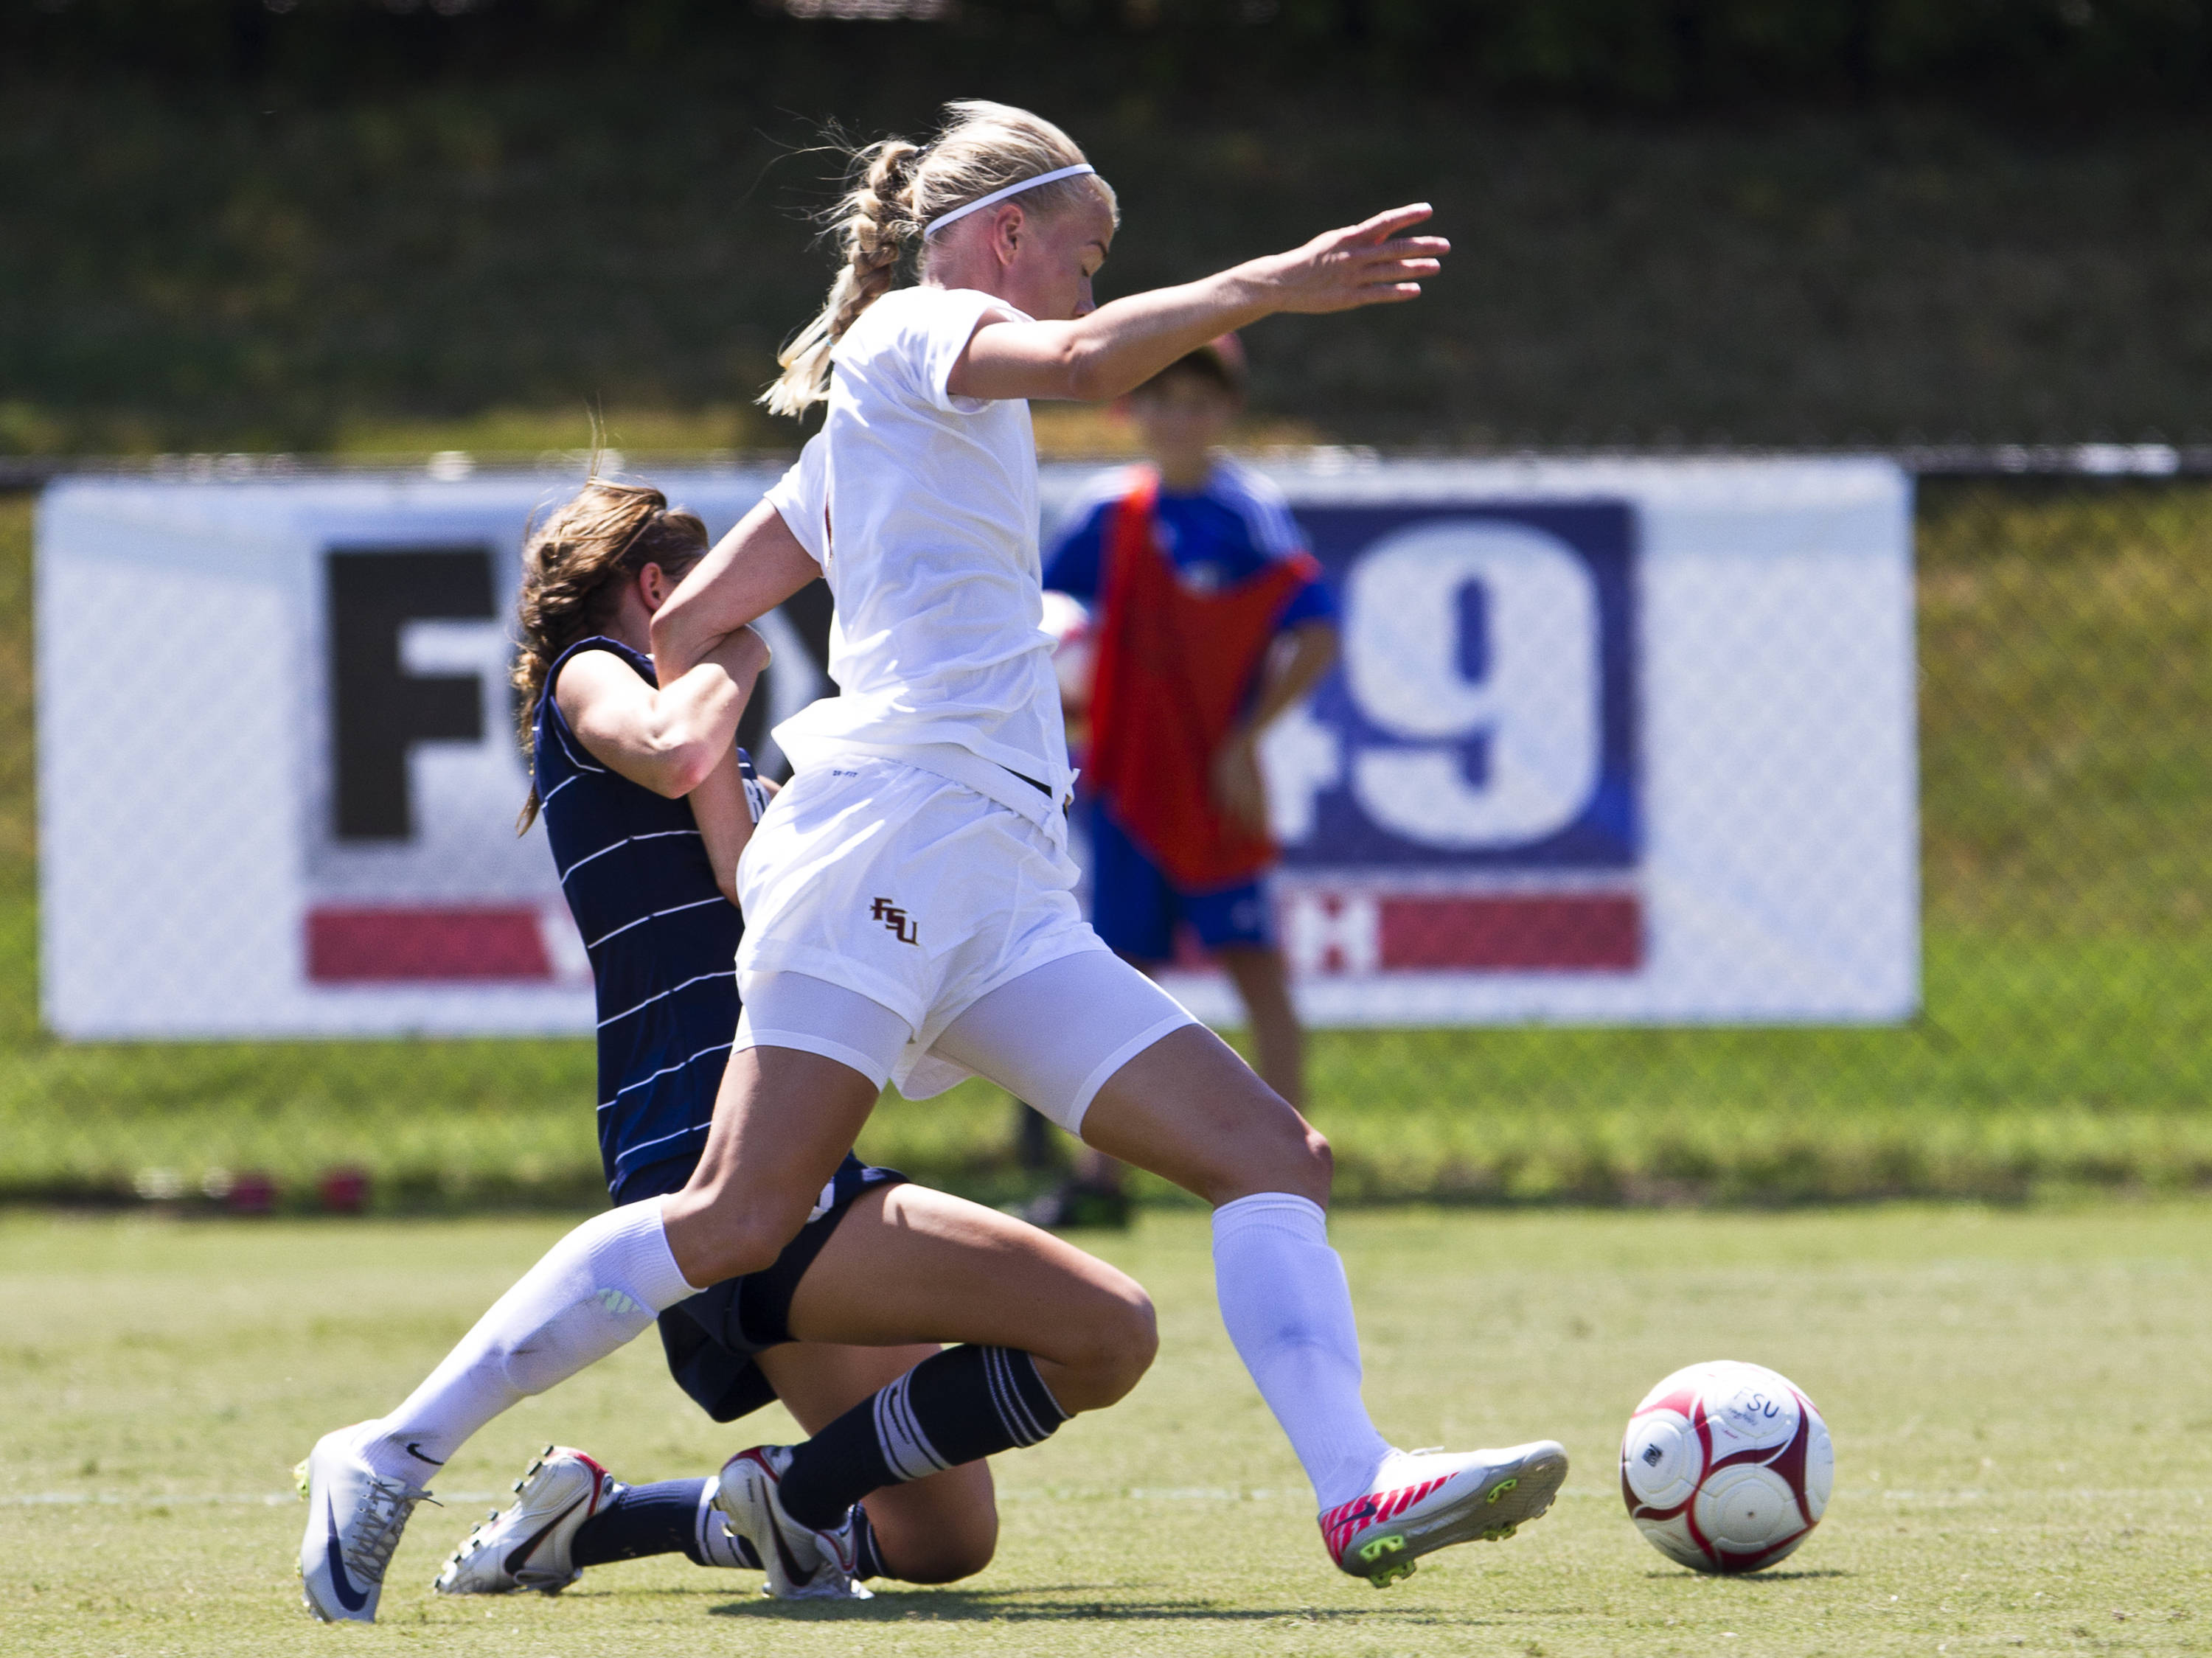 Dagny Brynjarsdottir (7) carries the ball downfield as a defender from North Florida attempts to tackle her from behind.